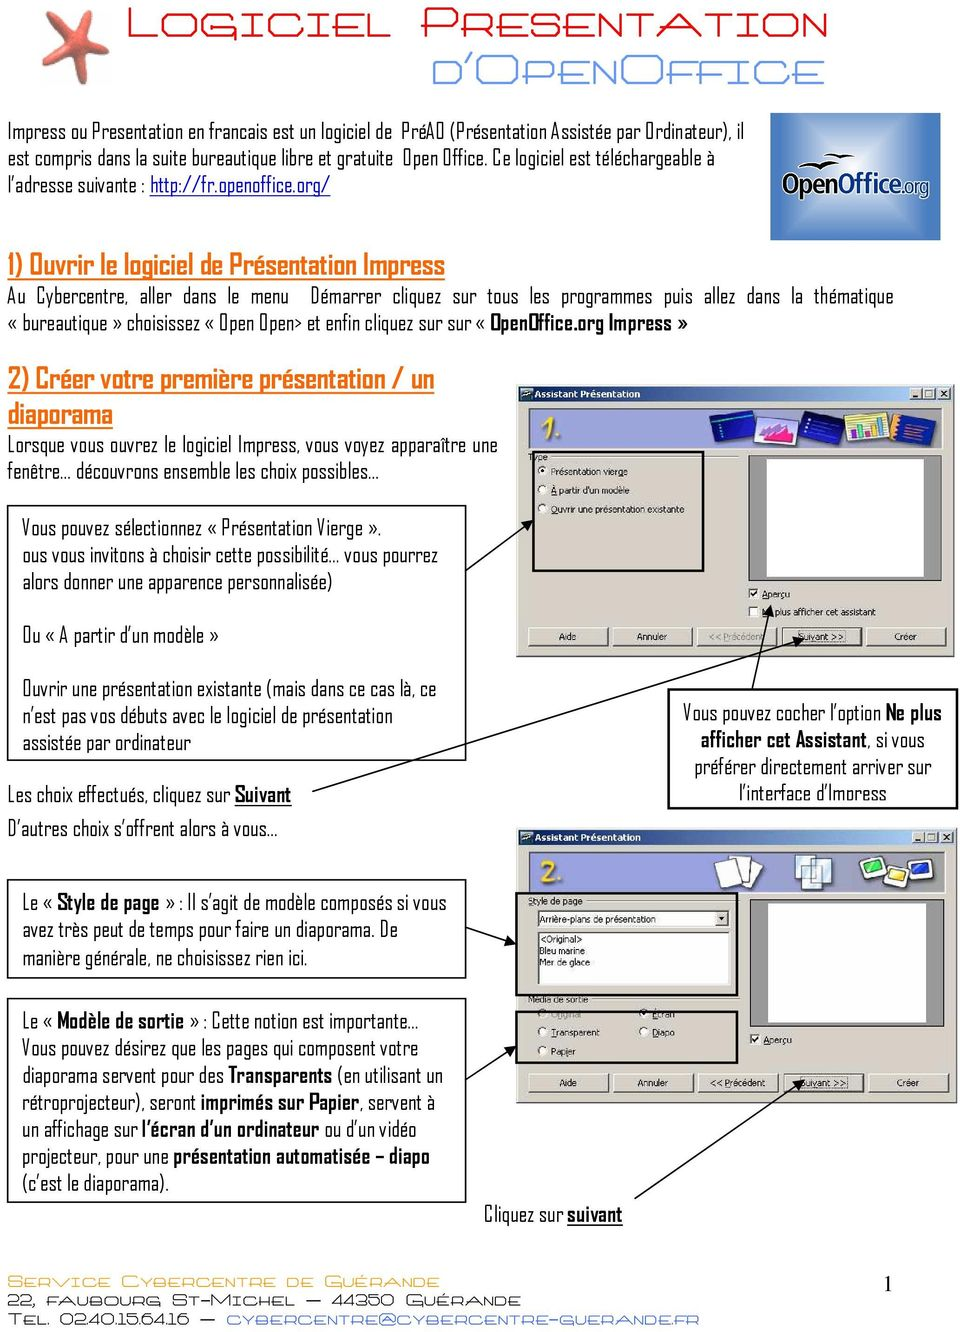 Logiciel presentation d openoffice pdf - Comment faire un diaporama sur open office ...